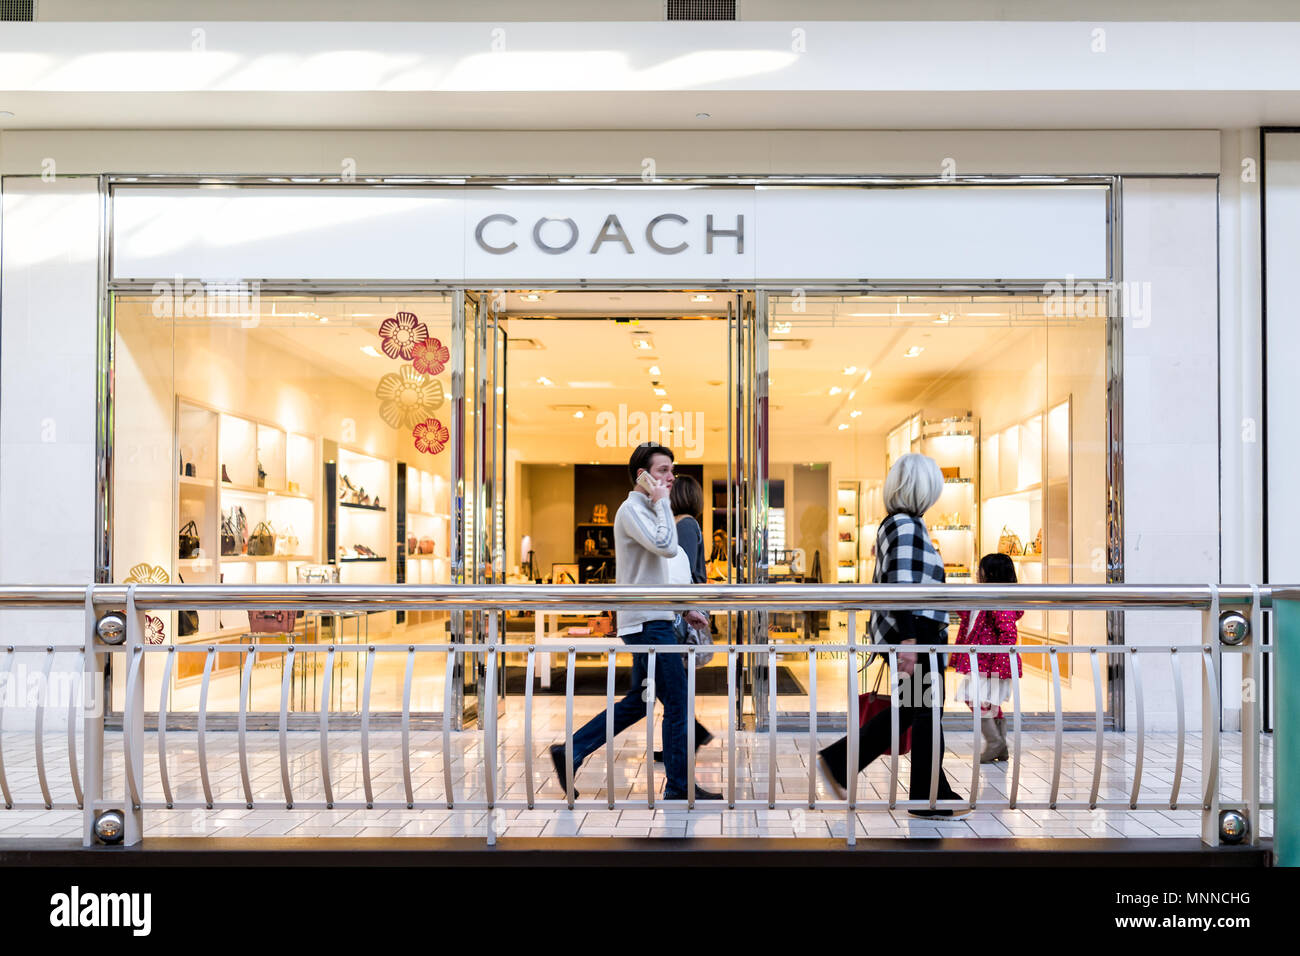 Tysons, USA - January 26, 2018: Coach store sign entrance shop purses display in Tyson's Corner Mall in Fairfax, Virginia by Mclean - Stock Image